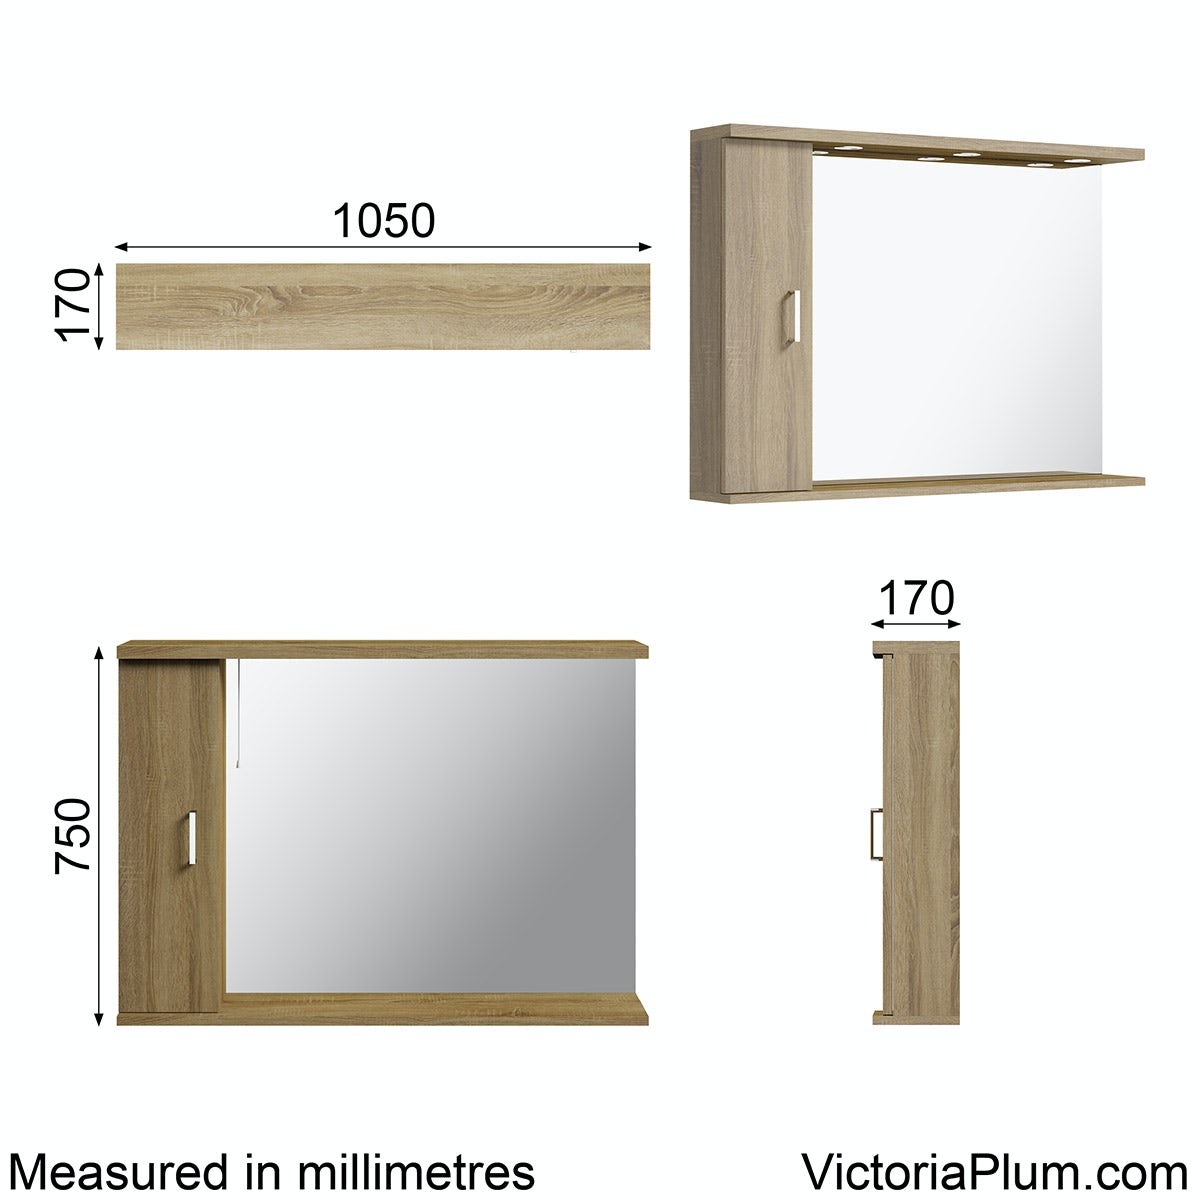 Dimensions for Orchard Eden oak illuminated mirror 1050mm